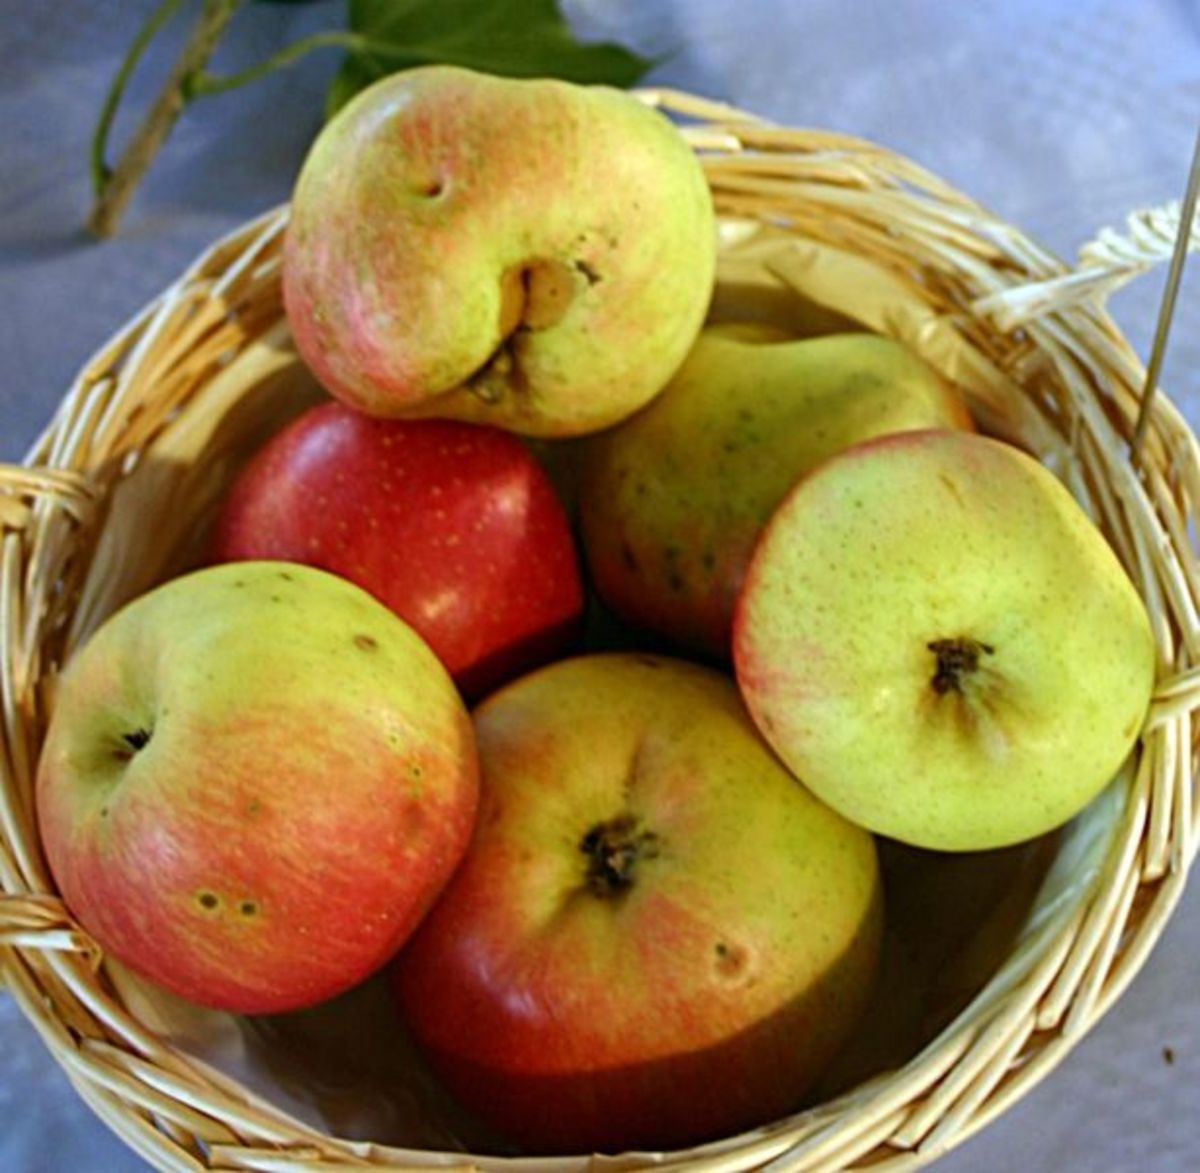 amazing-apples-facts-and-health-benefits